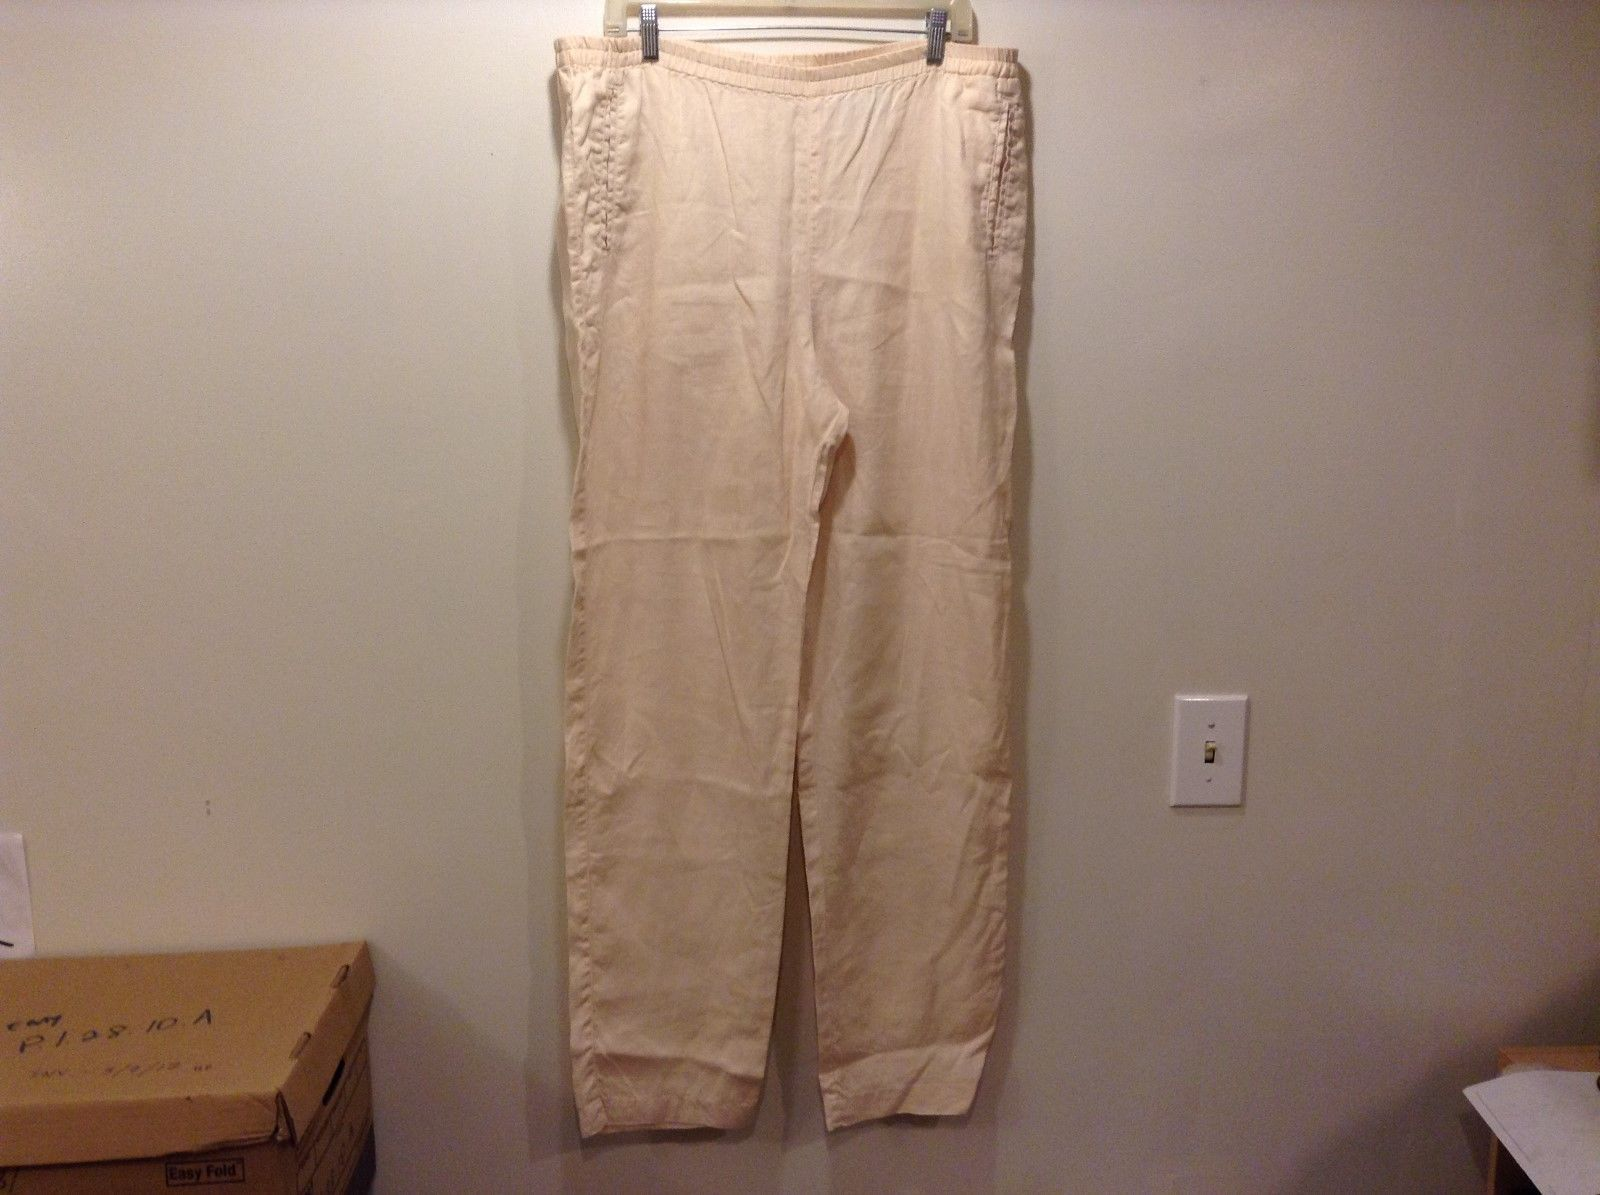 Eddie Bauer Ladies Light Peach Colored Linen Pants Sz Tall Medium